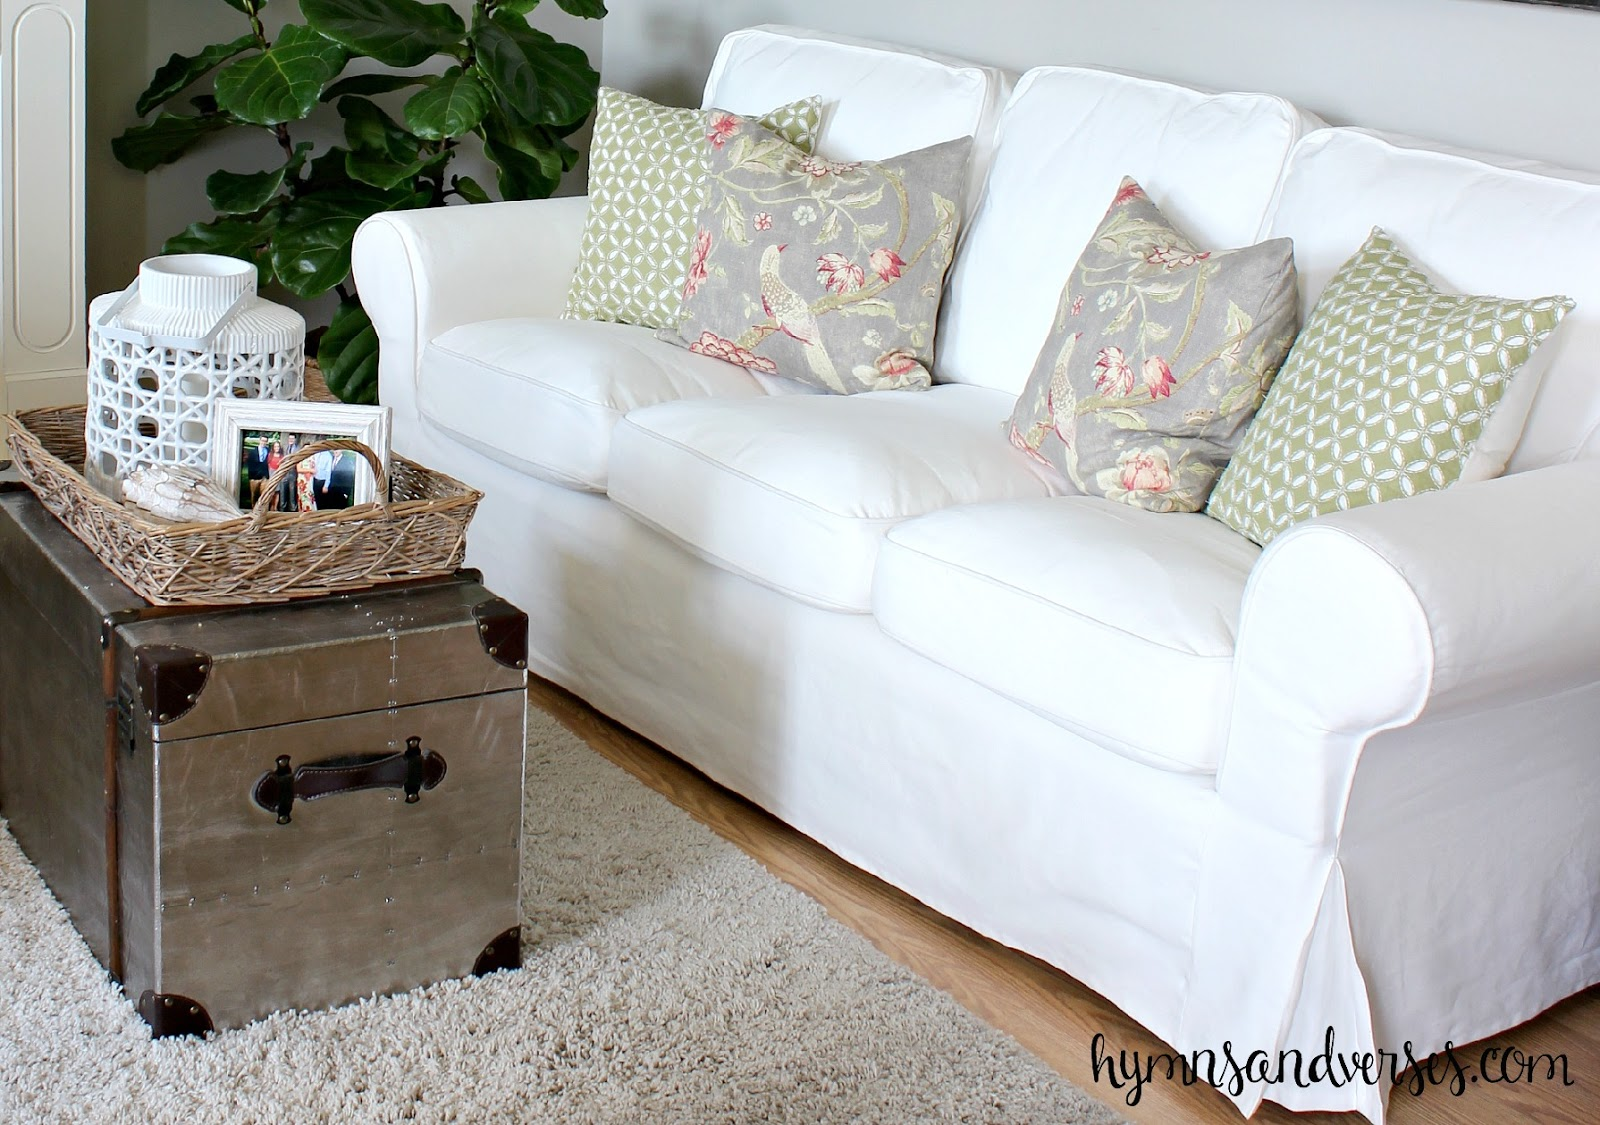 Linen Slipcover Sofas Beatrice Cream Microfiber Sofa A Brighter Look With An White Ikea Ektorp - Hymns And ...